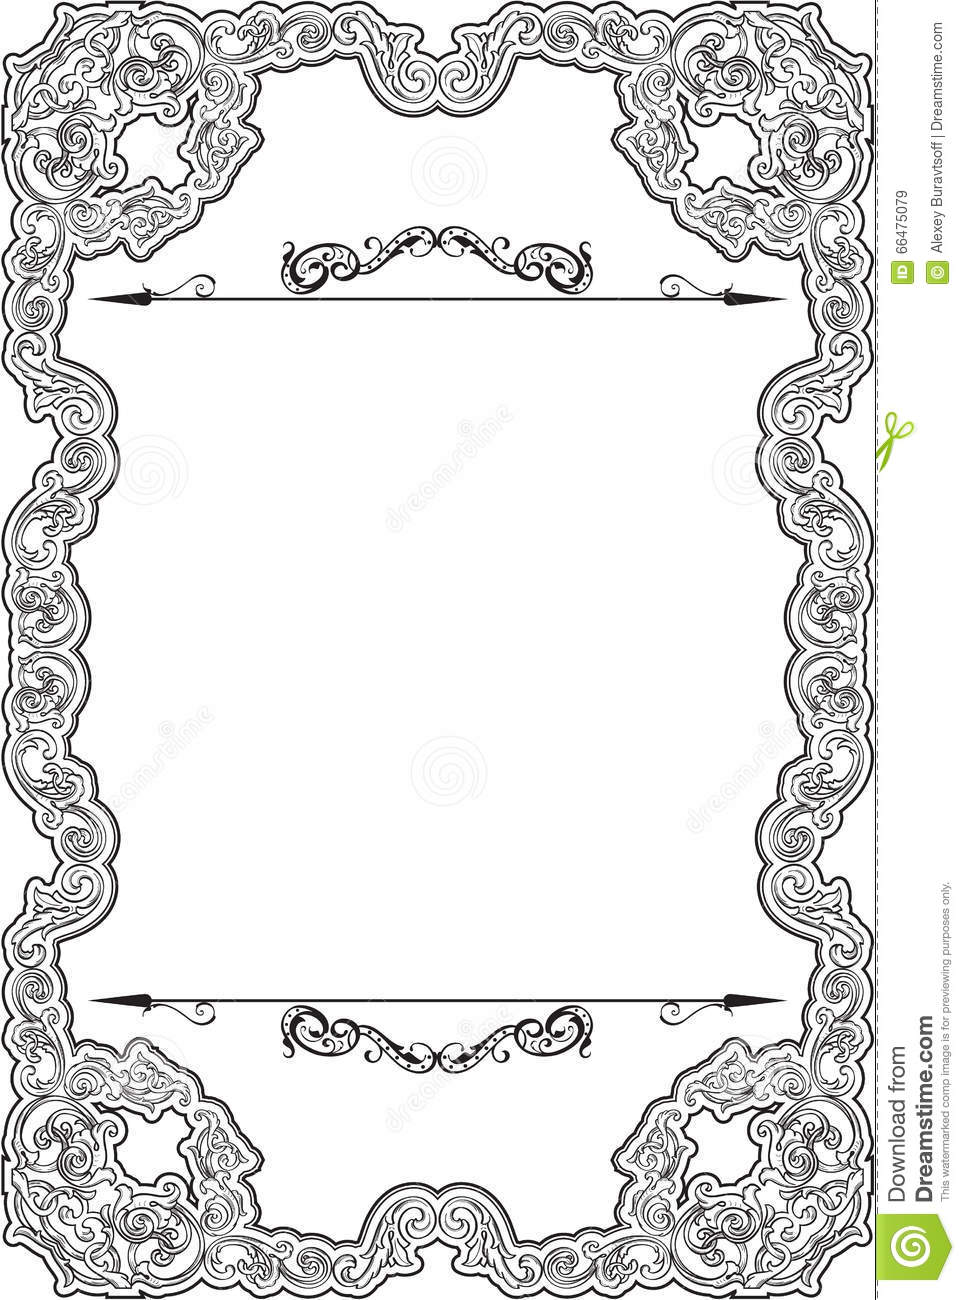 Vintage baroque nice frame stock vector. Illustration of figuration ...